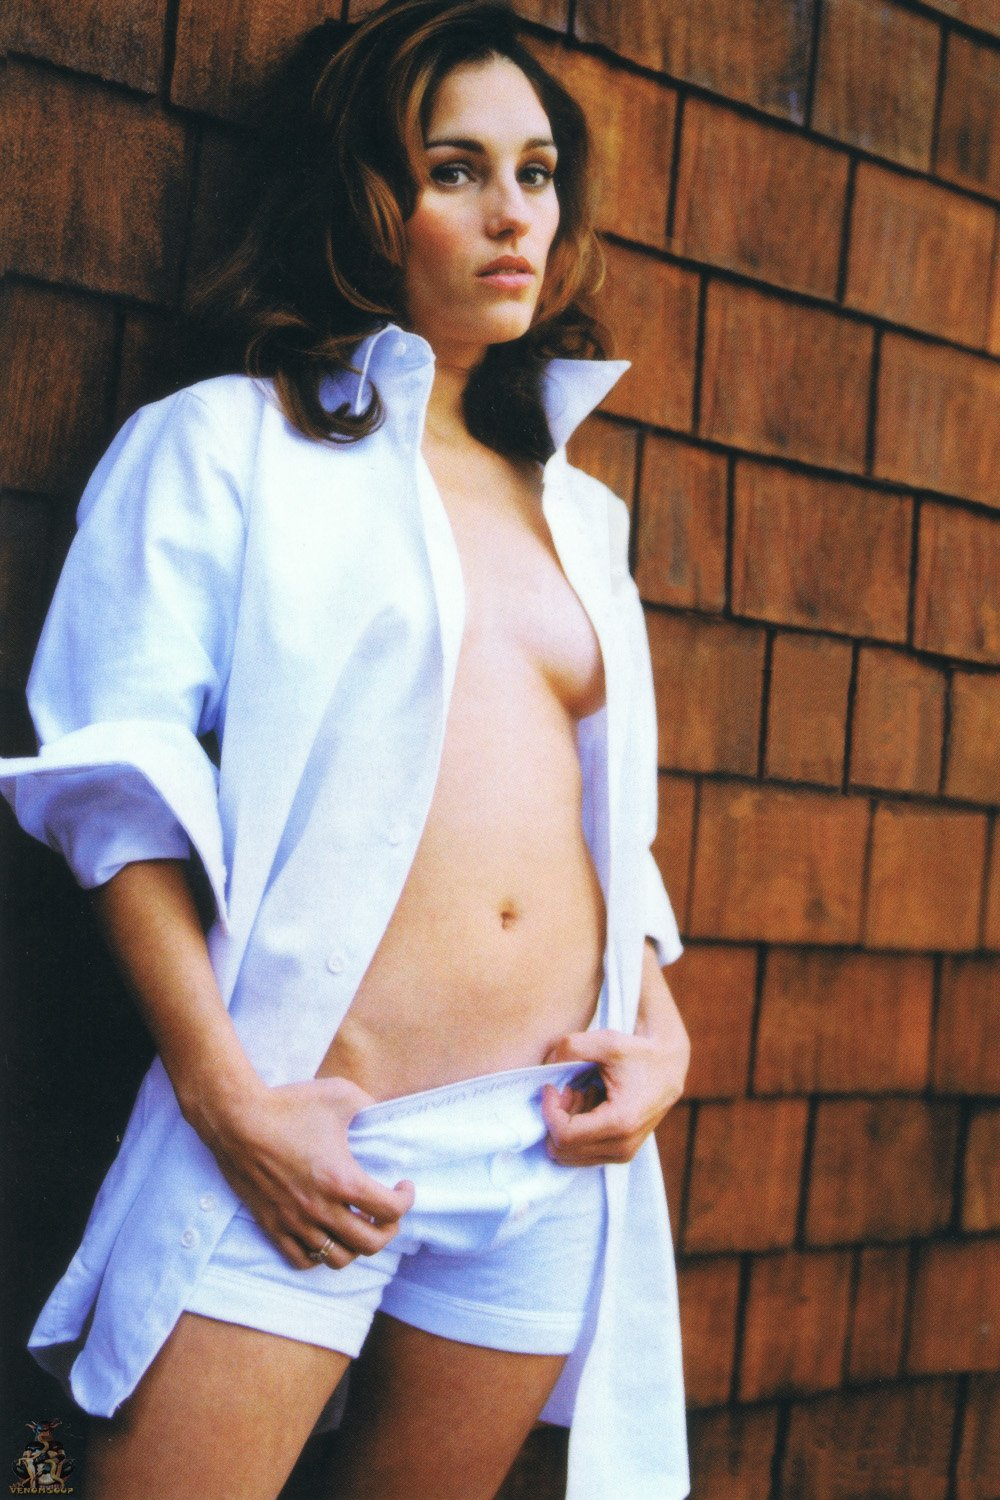 Amy jo johnson anal sorry, that